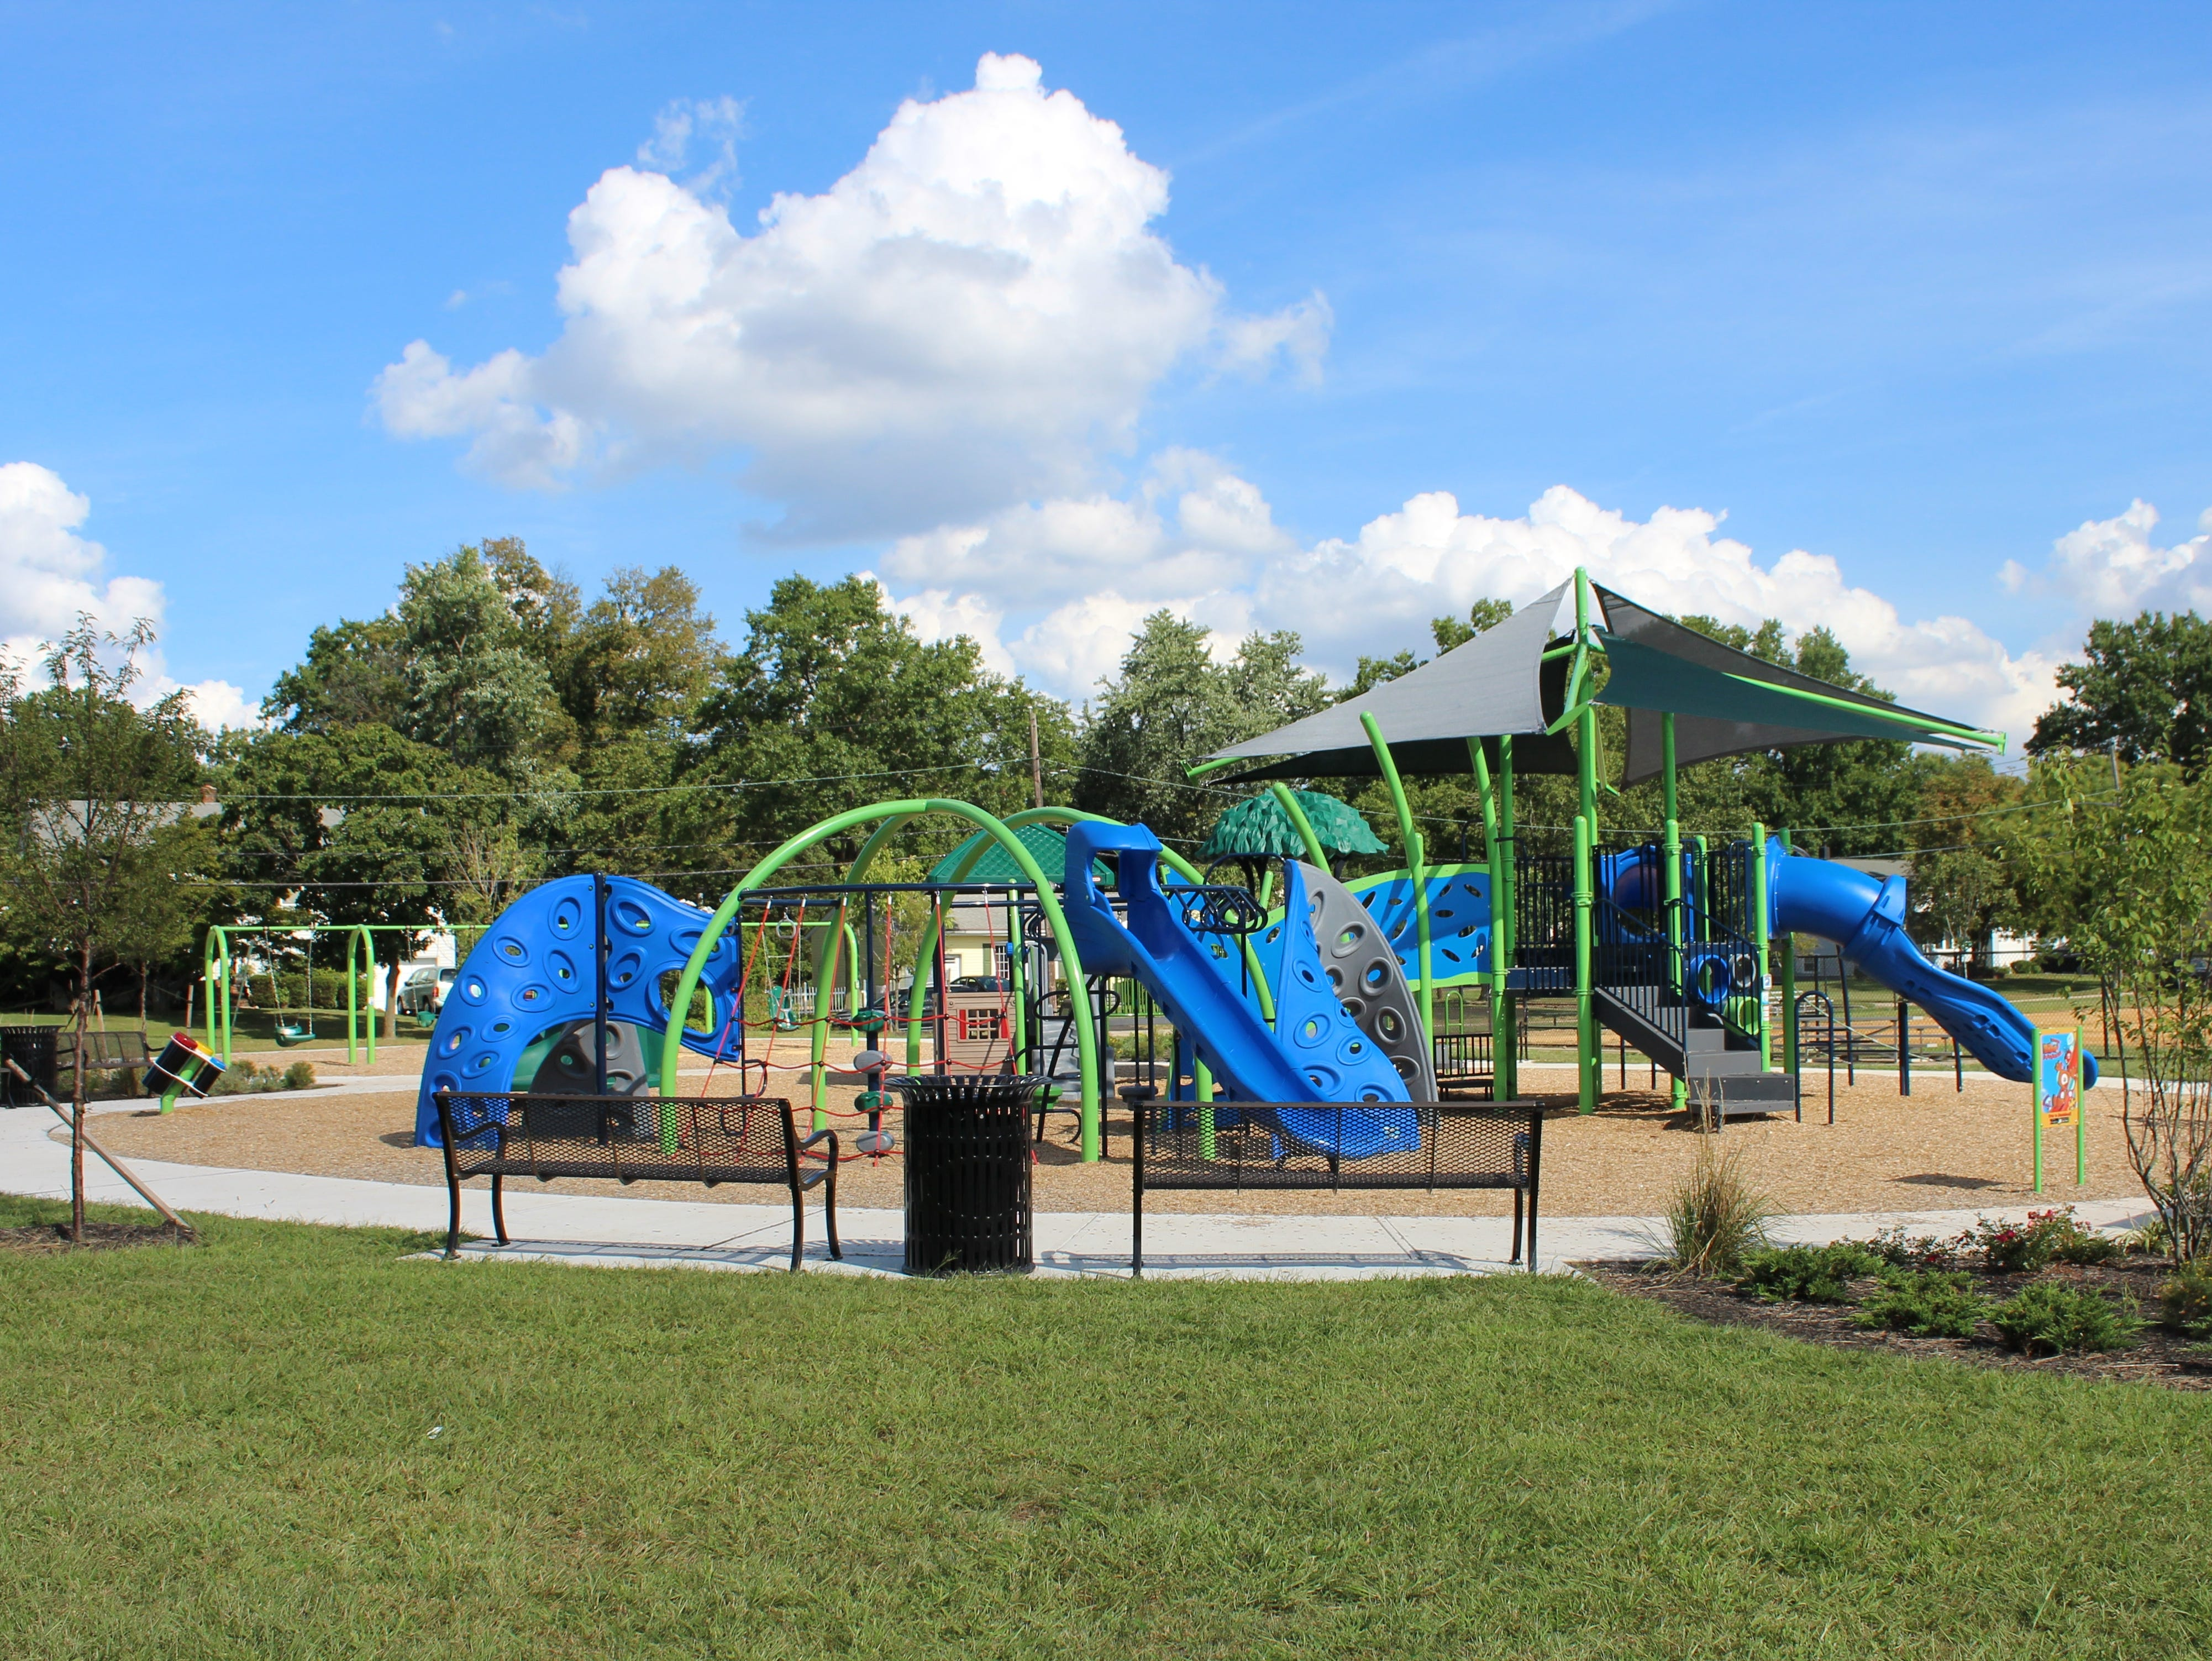 Revenue generated from recent Piscataway redevelopment projects also helped to fun several improvements to Perrine Park, including this playground.